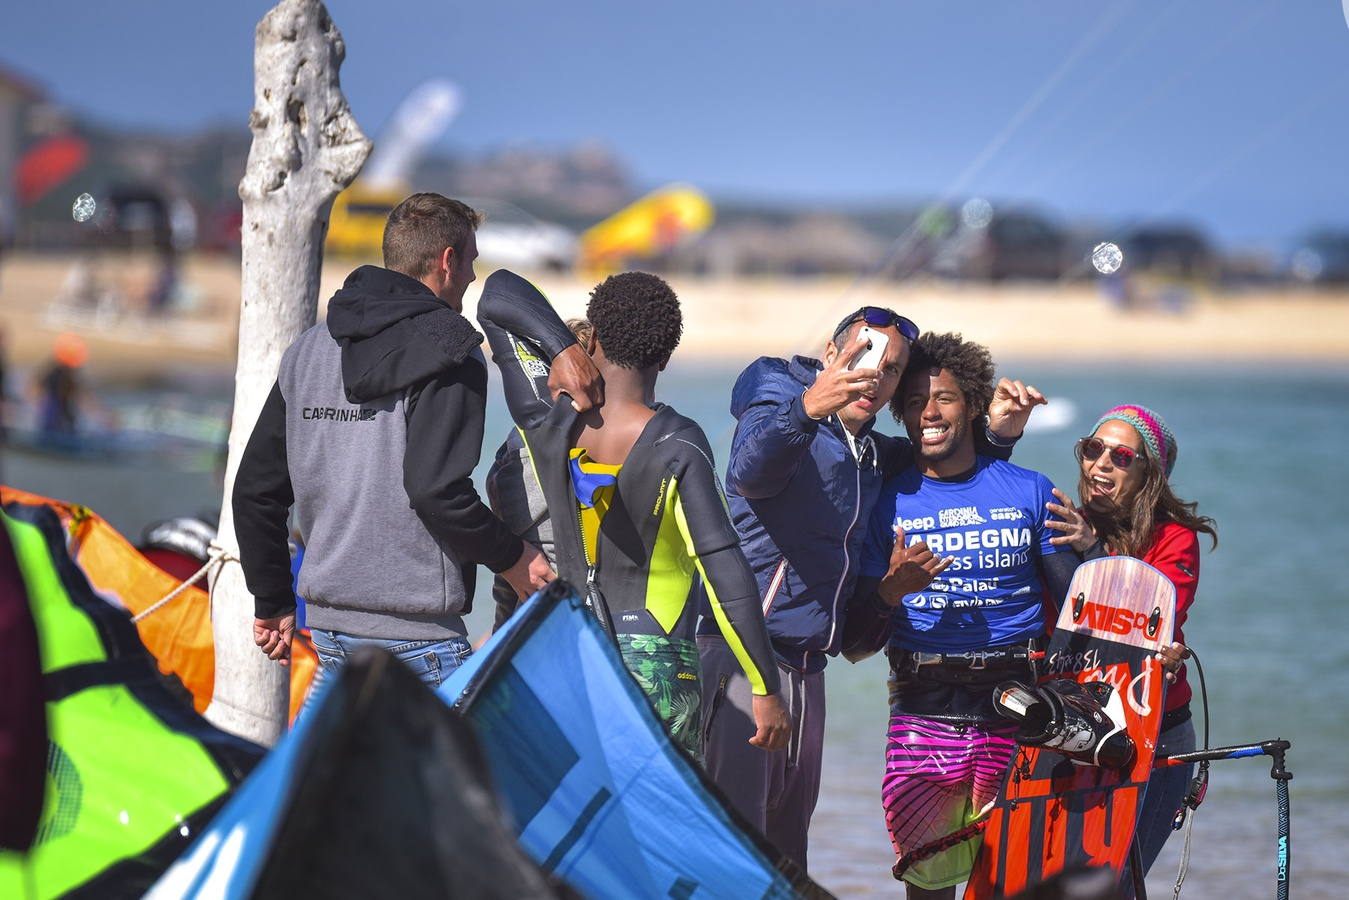 Rosa and Martinez win Freestyle World Championship titles in nailbiting final